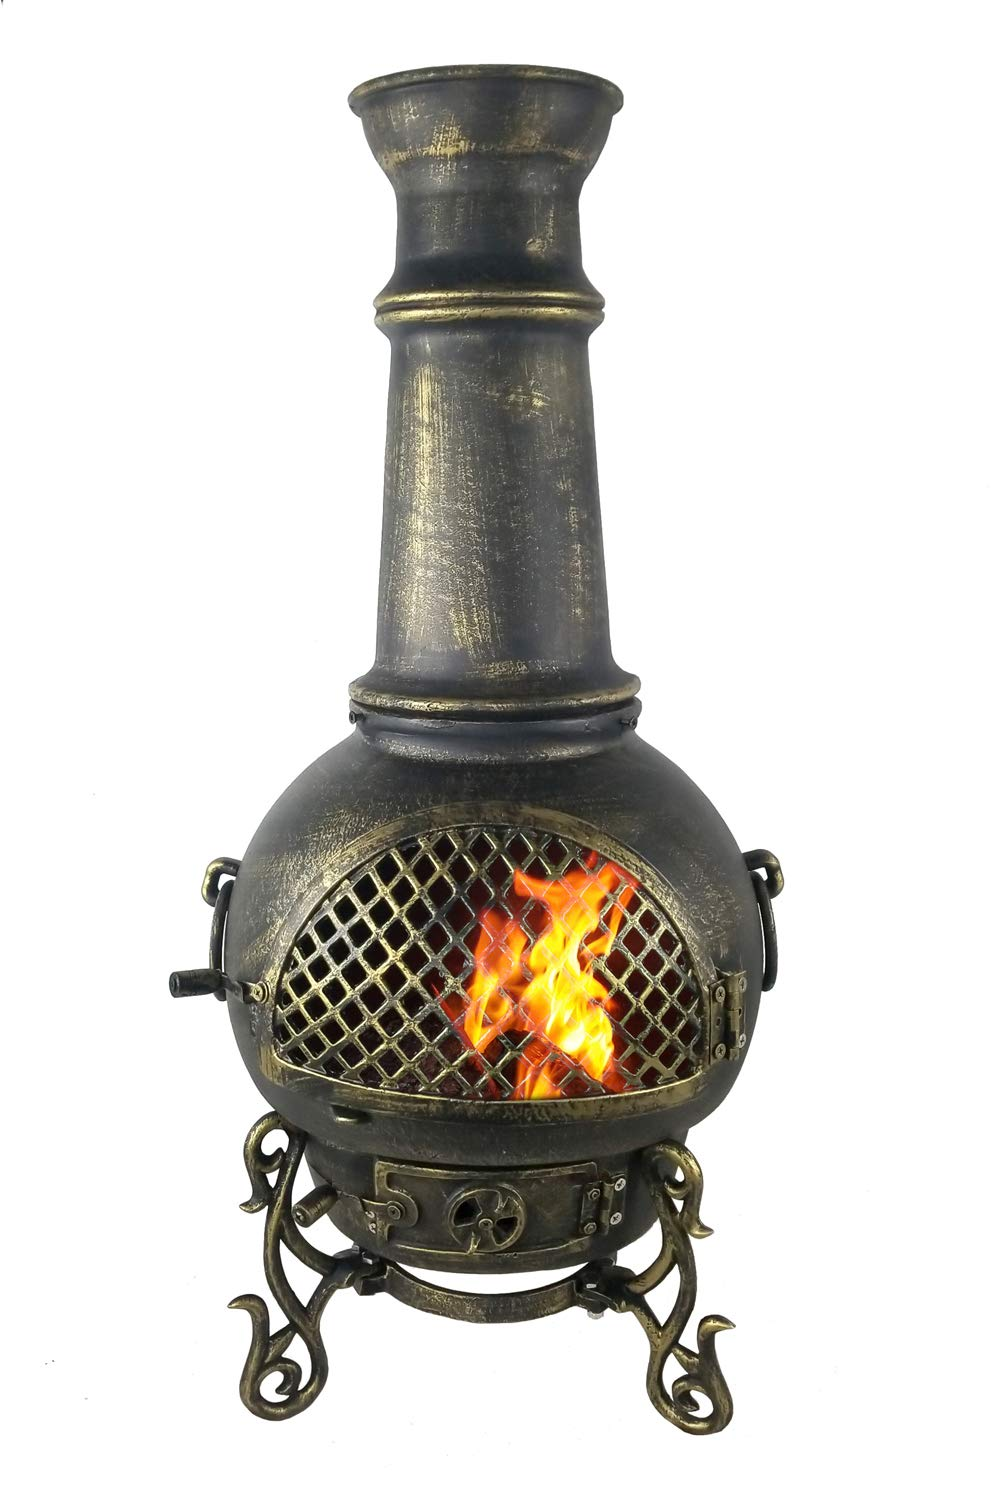 The Blue Rooster CAST Aluminum Gatsby Chiminea with Gas and a 10' Hose in Gold Accent. Also Comes with a Free Year Round Cover. by The Blue Rooster